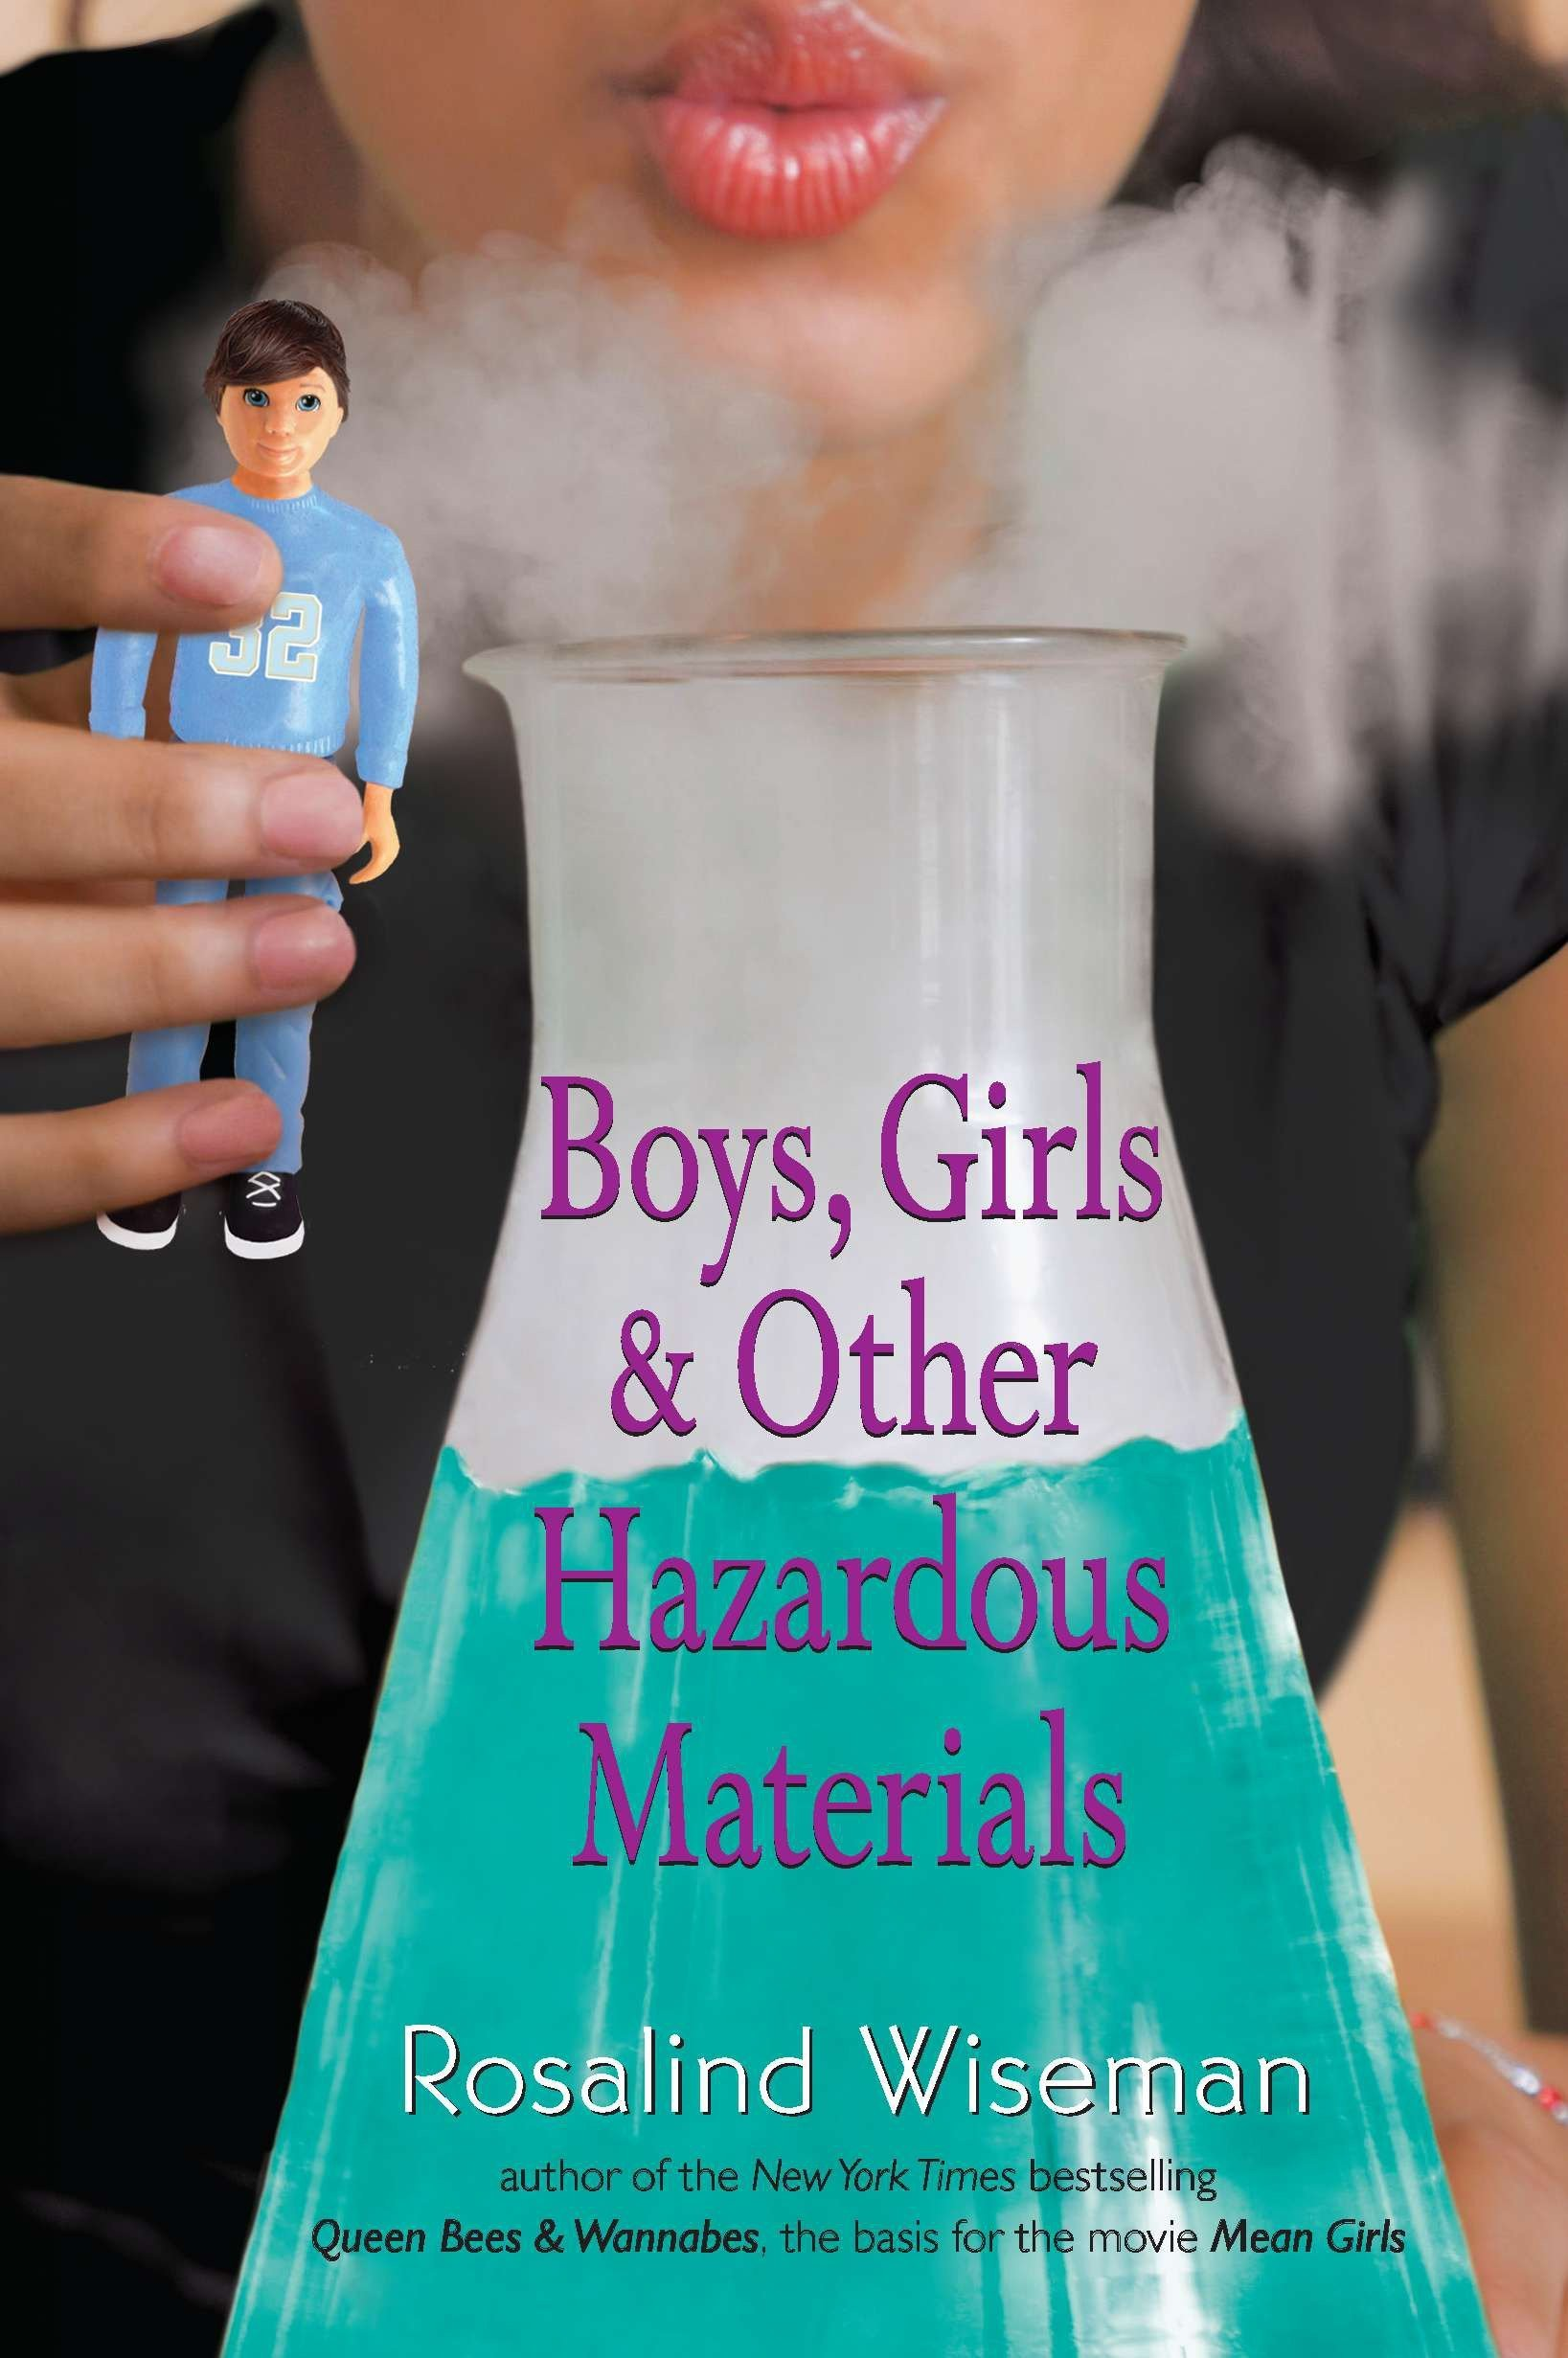 girls Boys other materials and hazardous